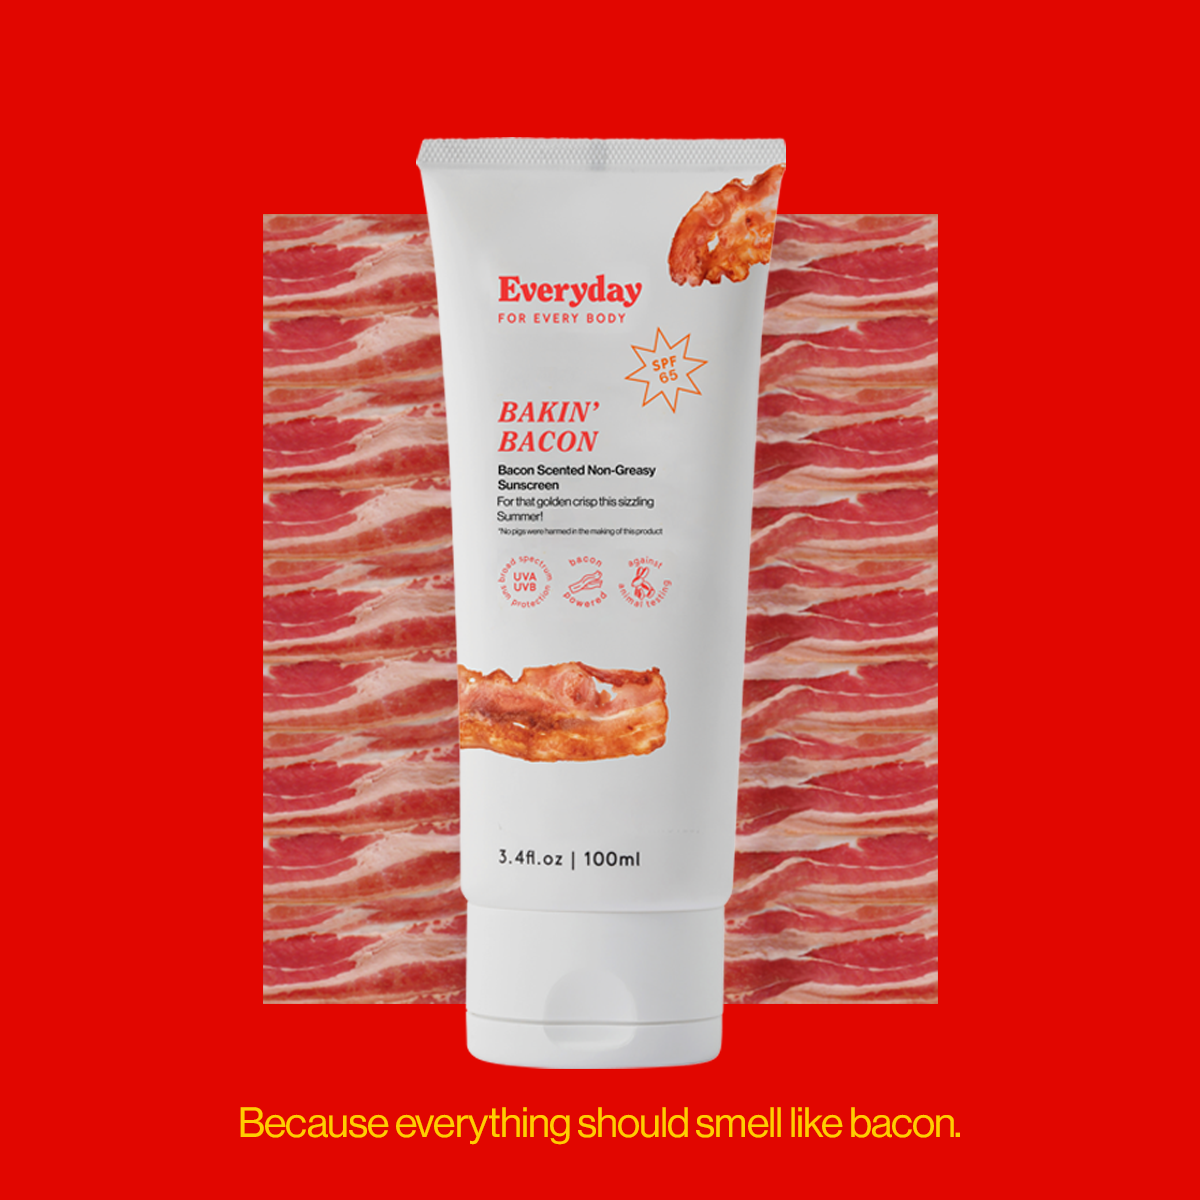 Everyday for every body bacon sunscreen, spf 65, cruelty free